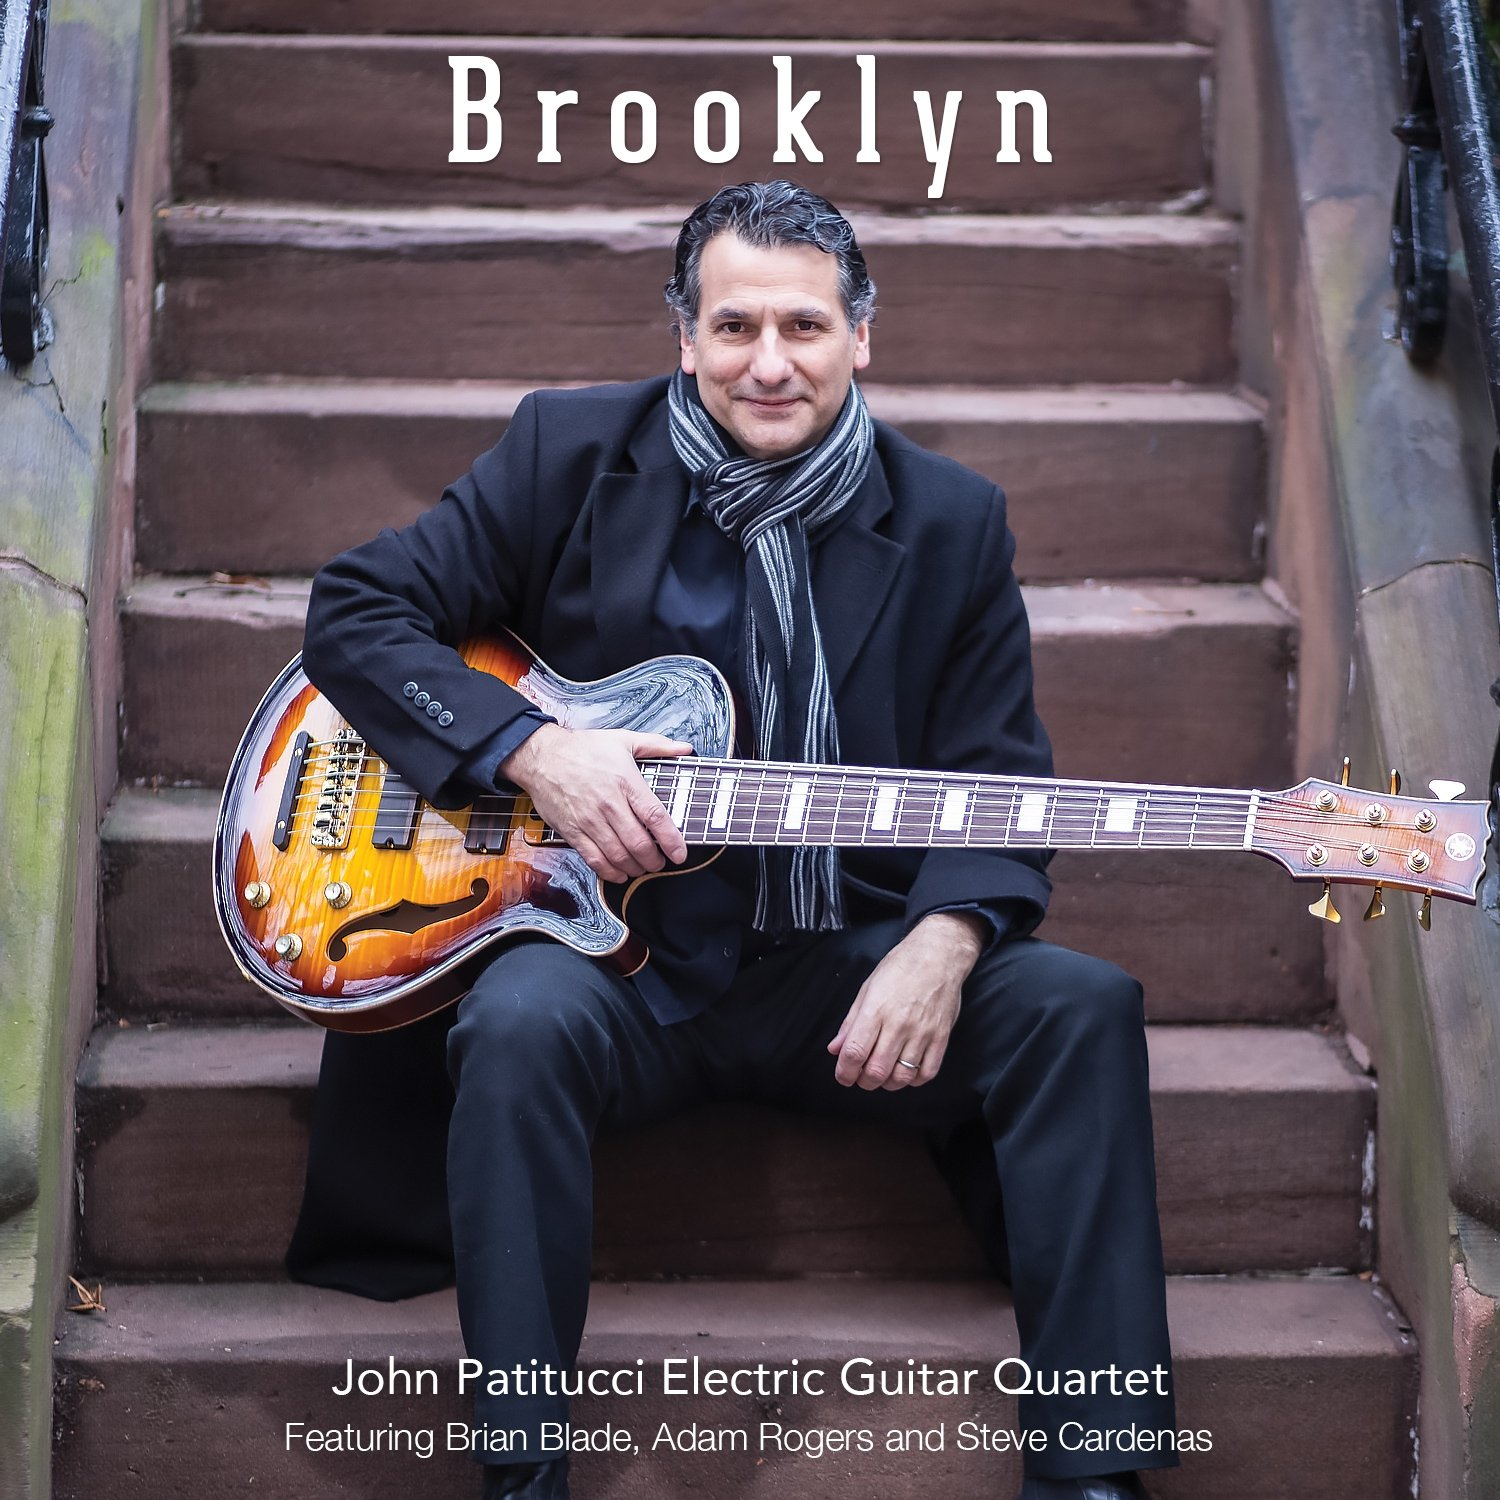 john patitucci brooklyn amazon com music